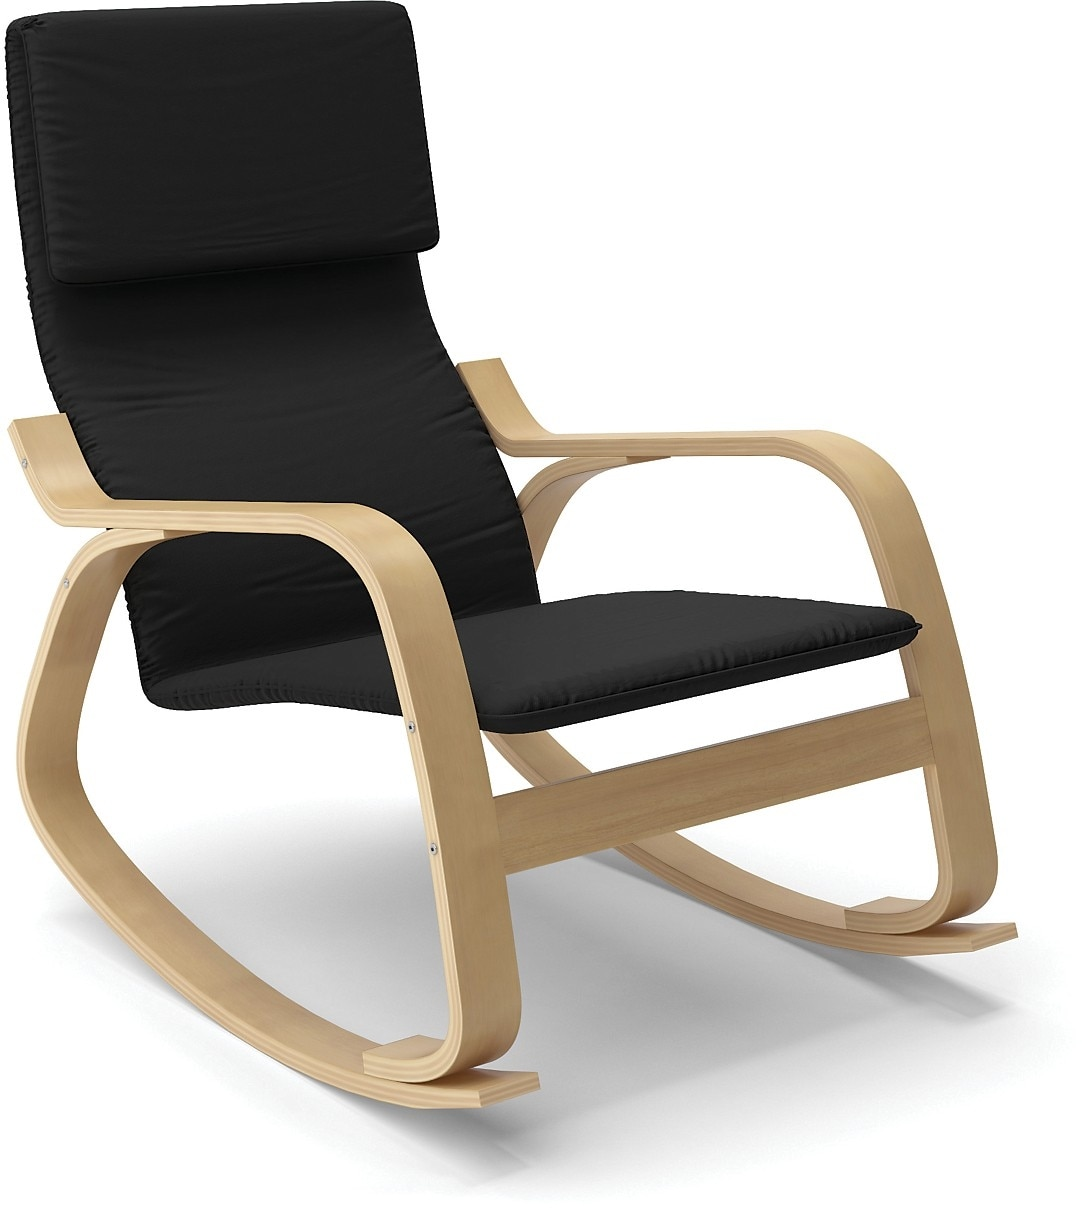 Volo Contemporary Rocking Chair – Black